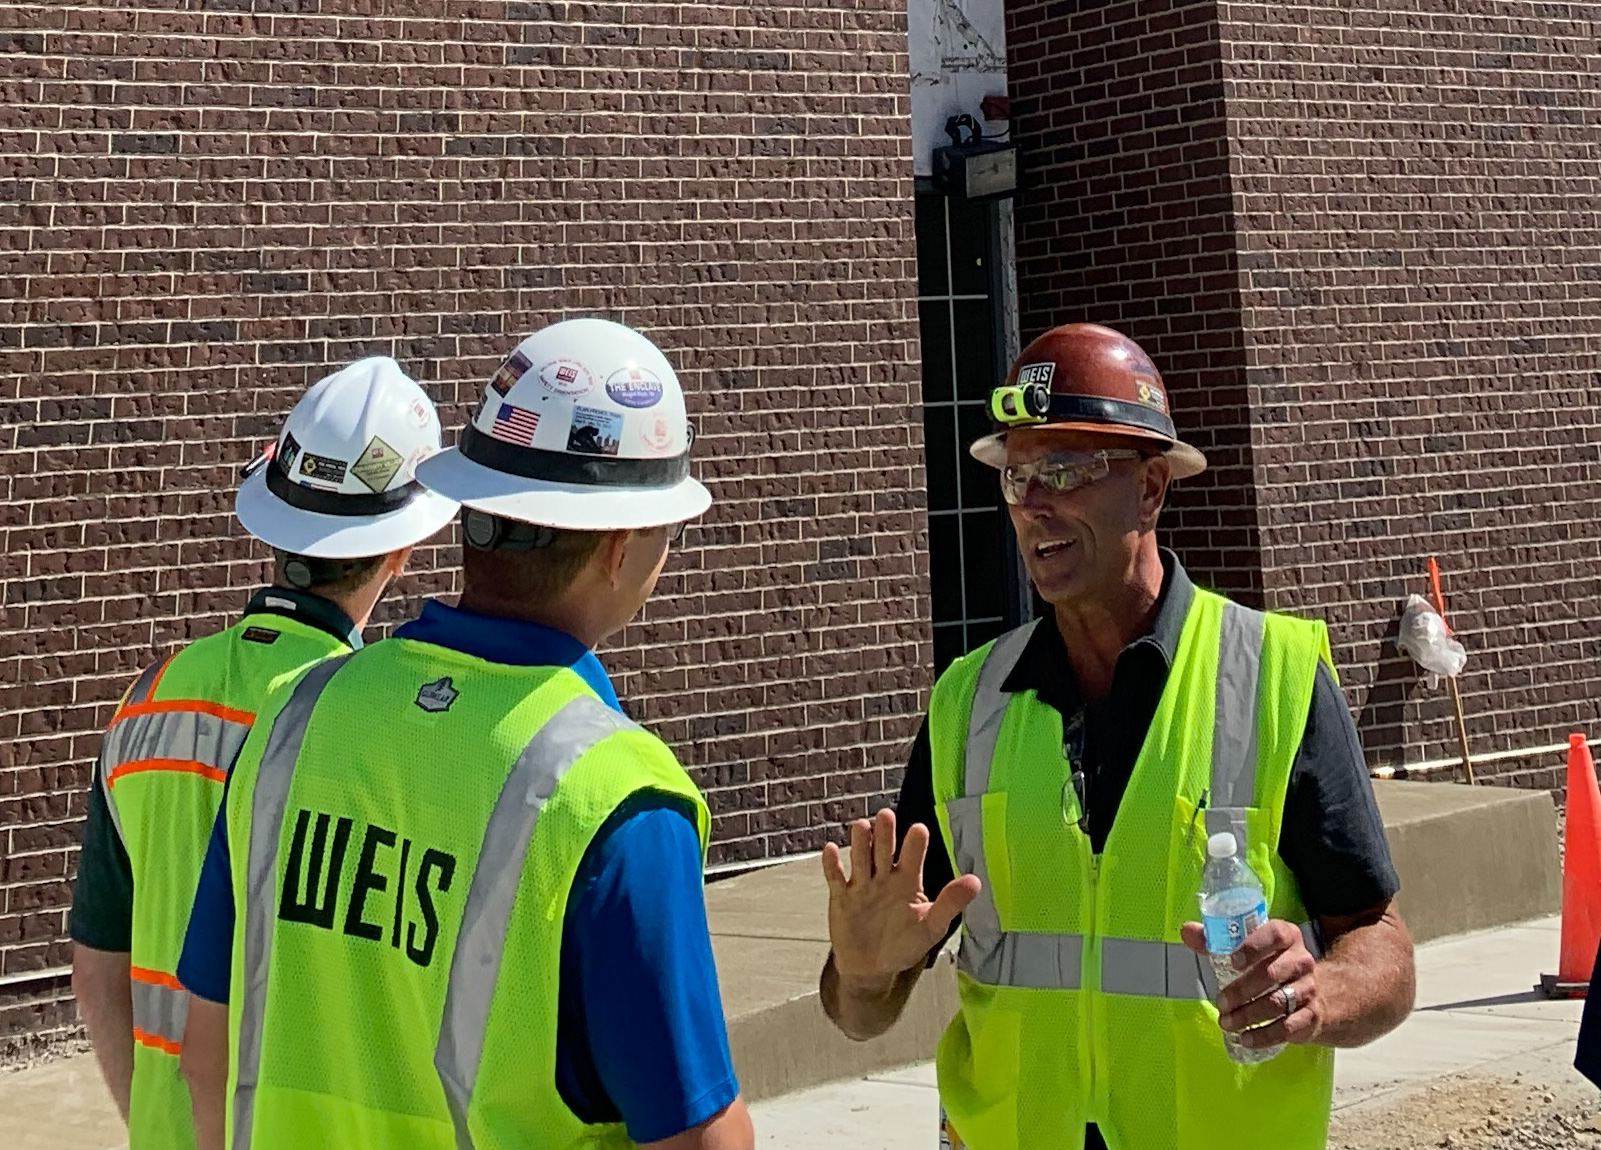 Weis Consctruction Workers_edited.jpg